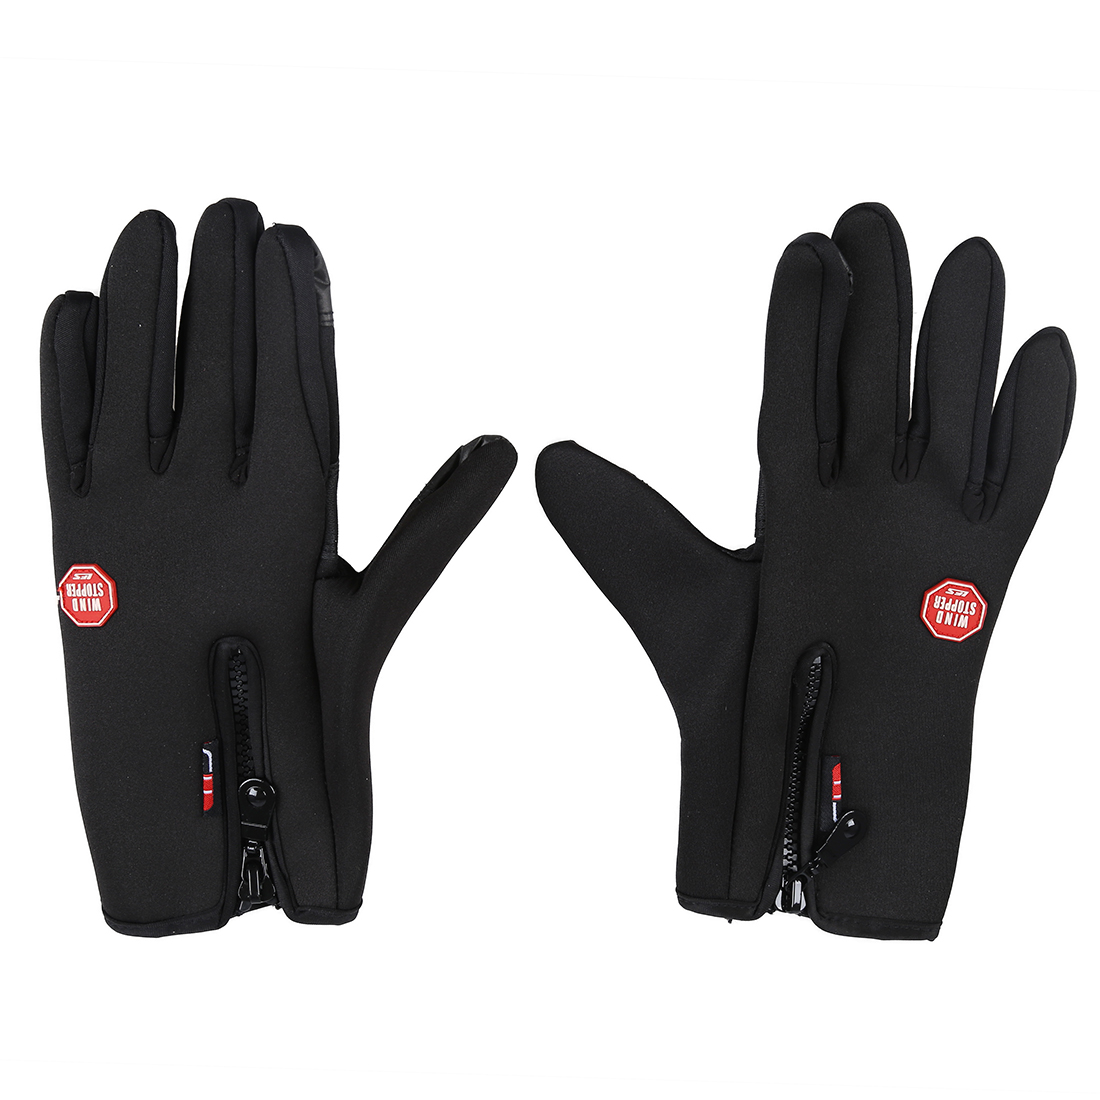 MOOL Touch Screen Windproof Warm Gloves Outdoor Cycling Skiing Hiking Unisex Black S ...